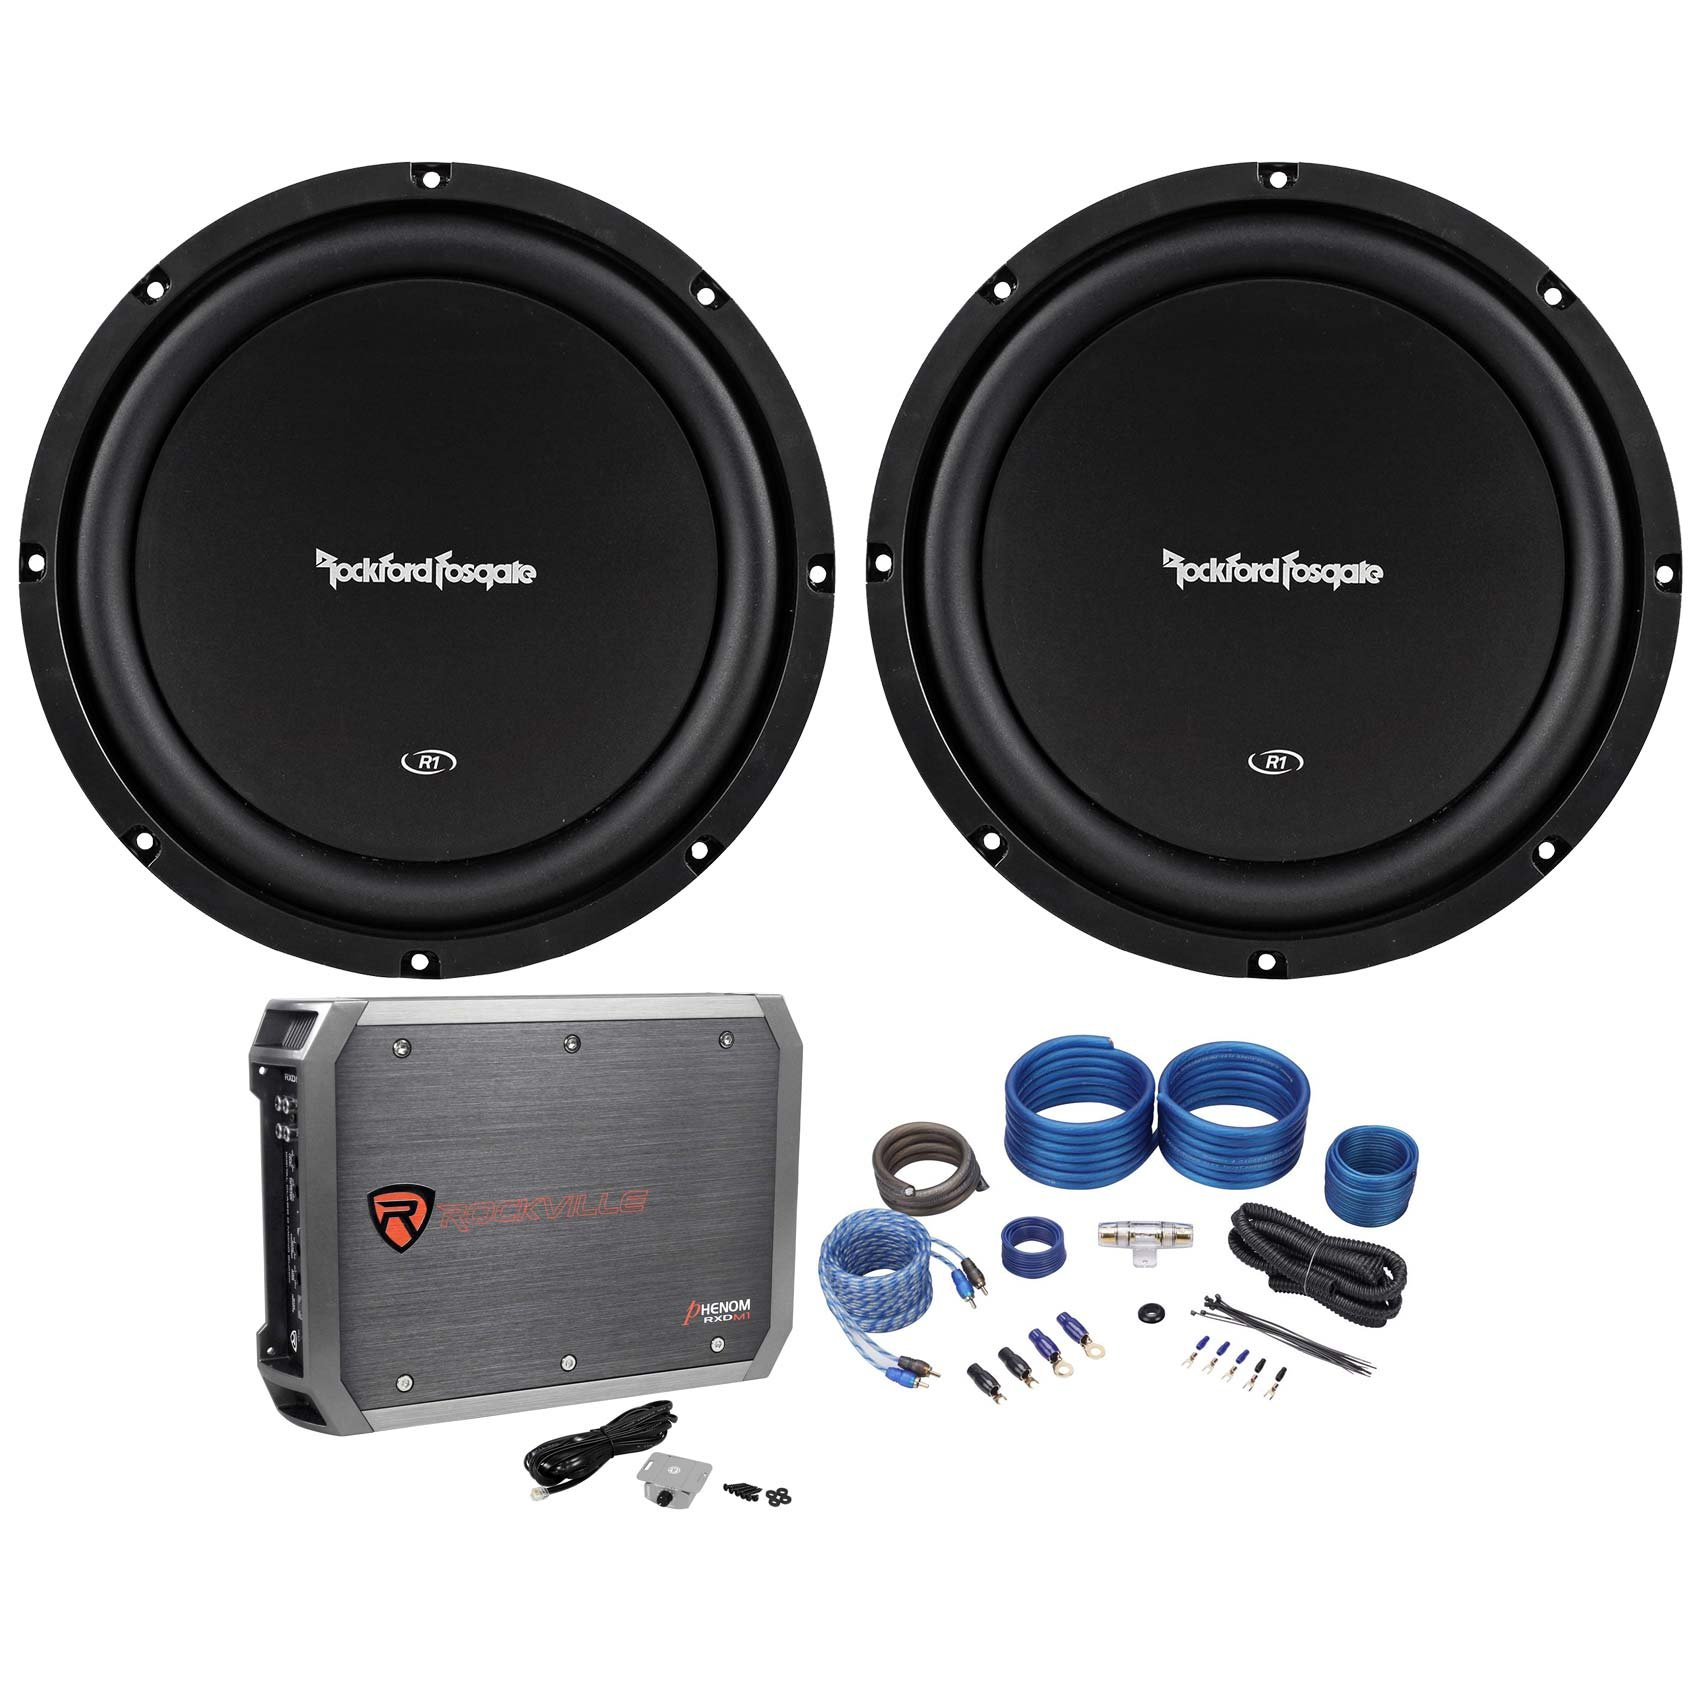 Cheap Car Amplifier Rockford Fosgate Find Stereo Kit 800w Sub 500w 2 Channel Capacitor Wiring Get Quotations R1s4 10 Subwoofers Mono